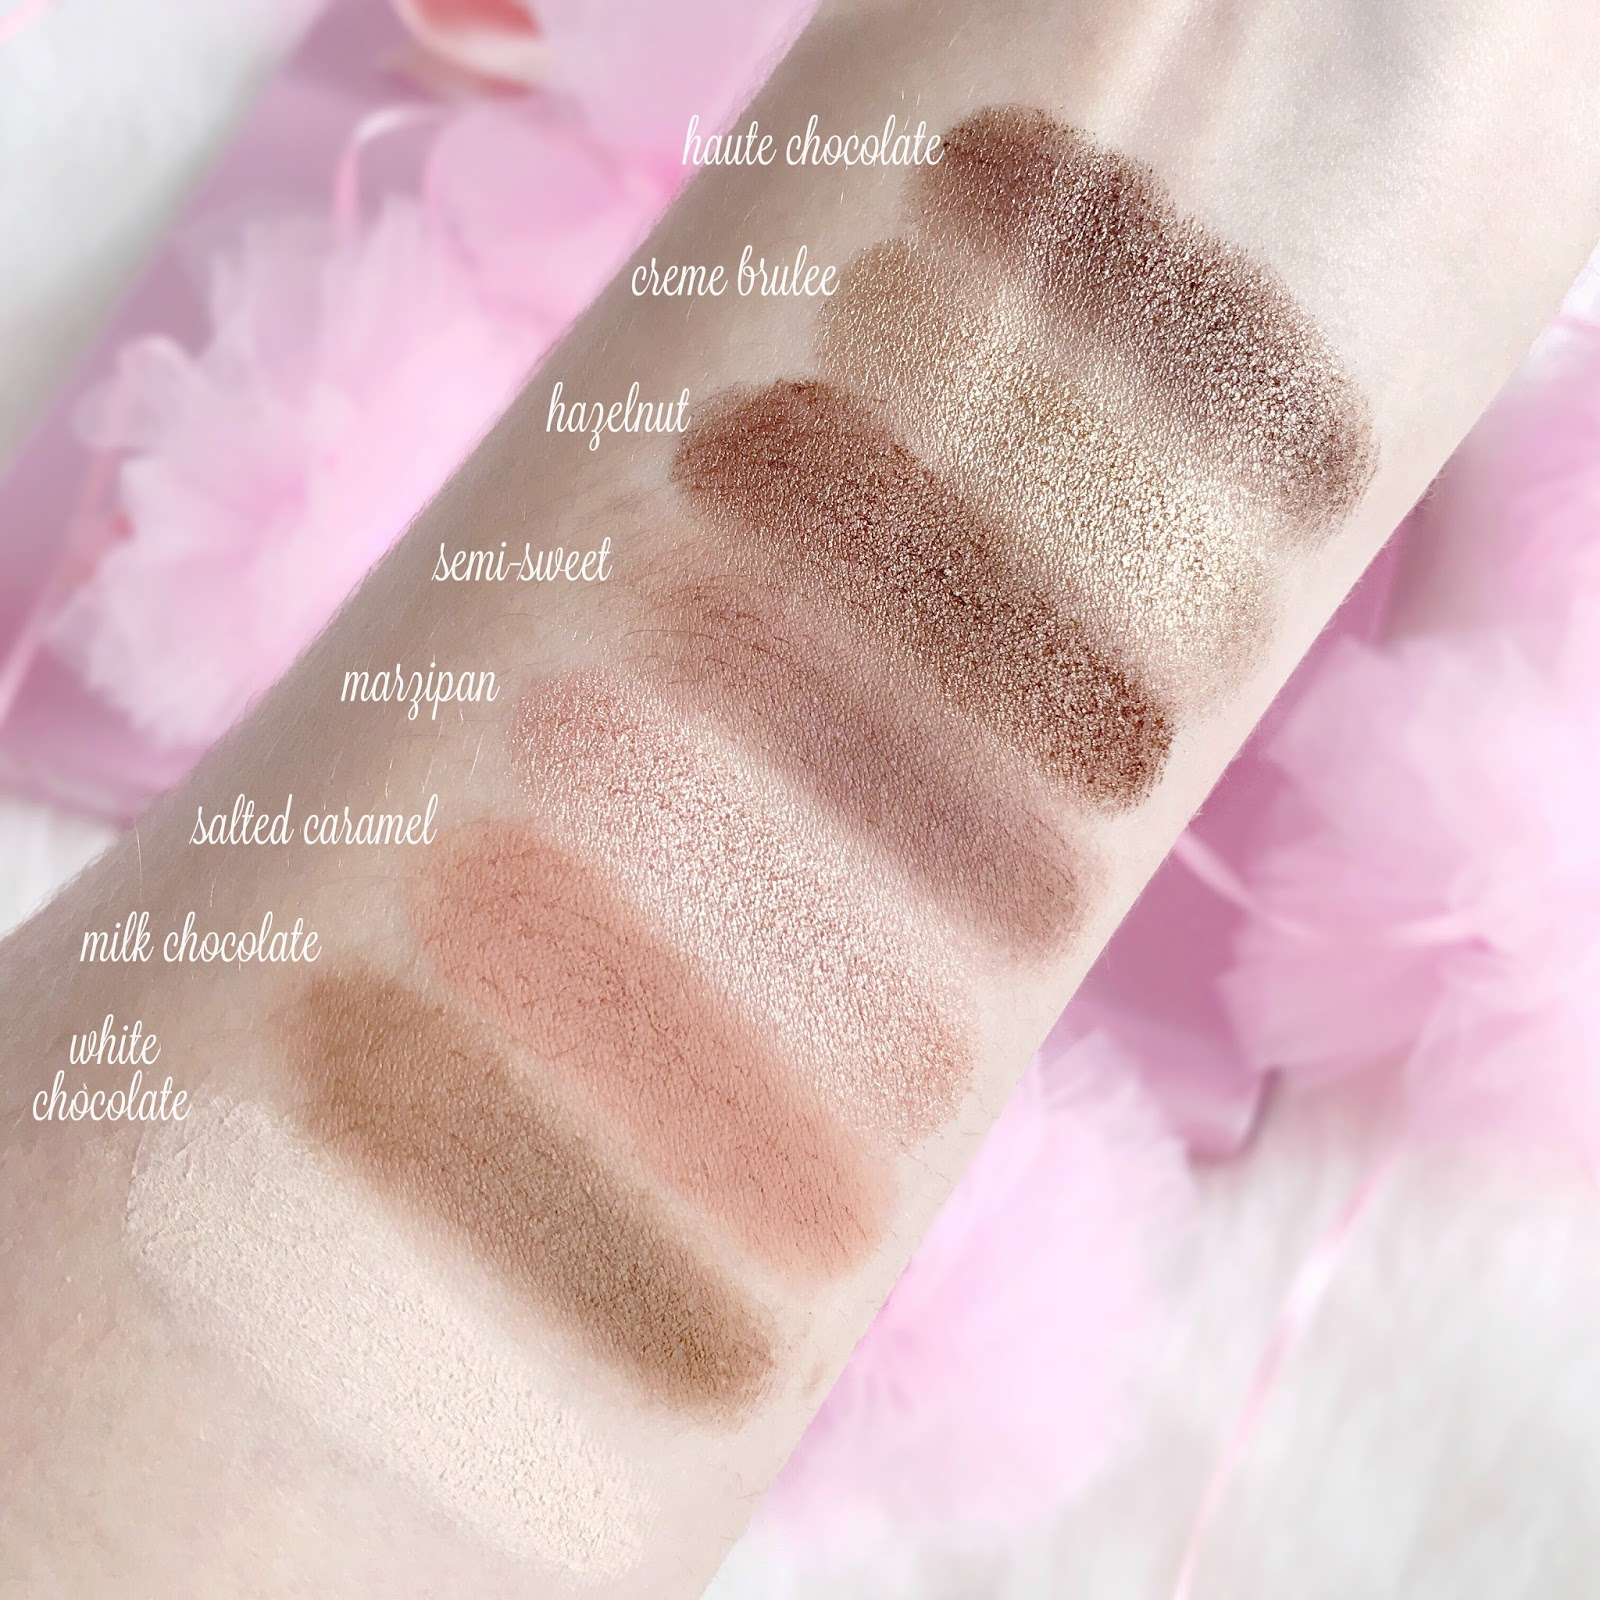 Too Faced Chocolate Bar Palette Swatches | Is It Worth The Hype?